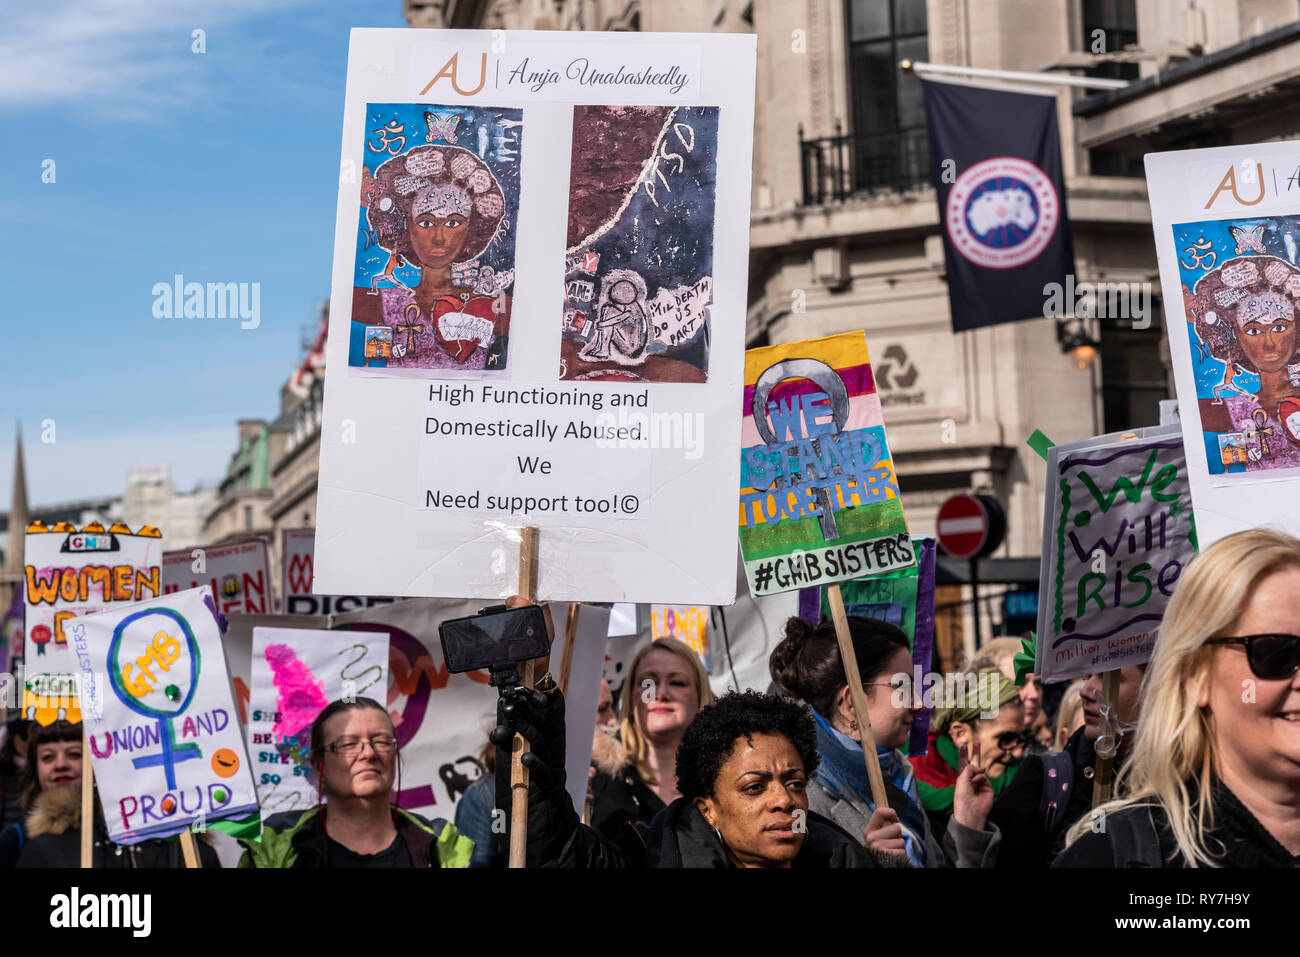 Million Women Rise protest march. Thousands of women and children marched through London to raise awareness of violence towards women - Stock Image